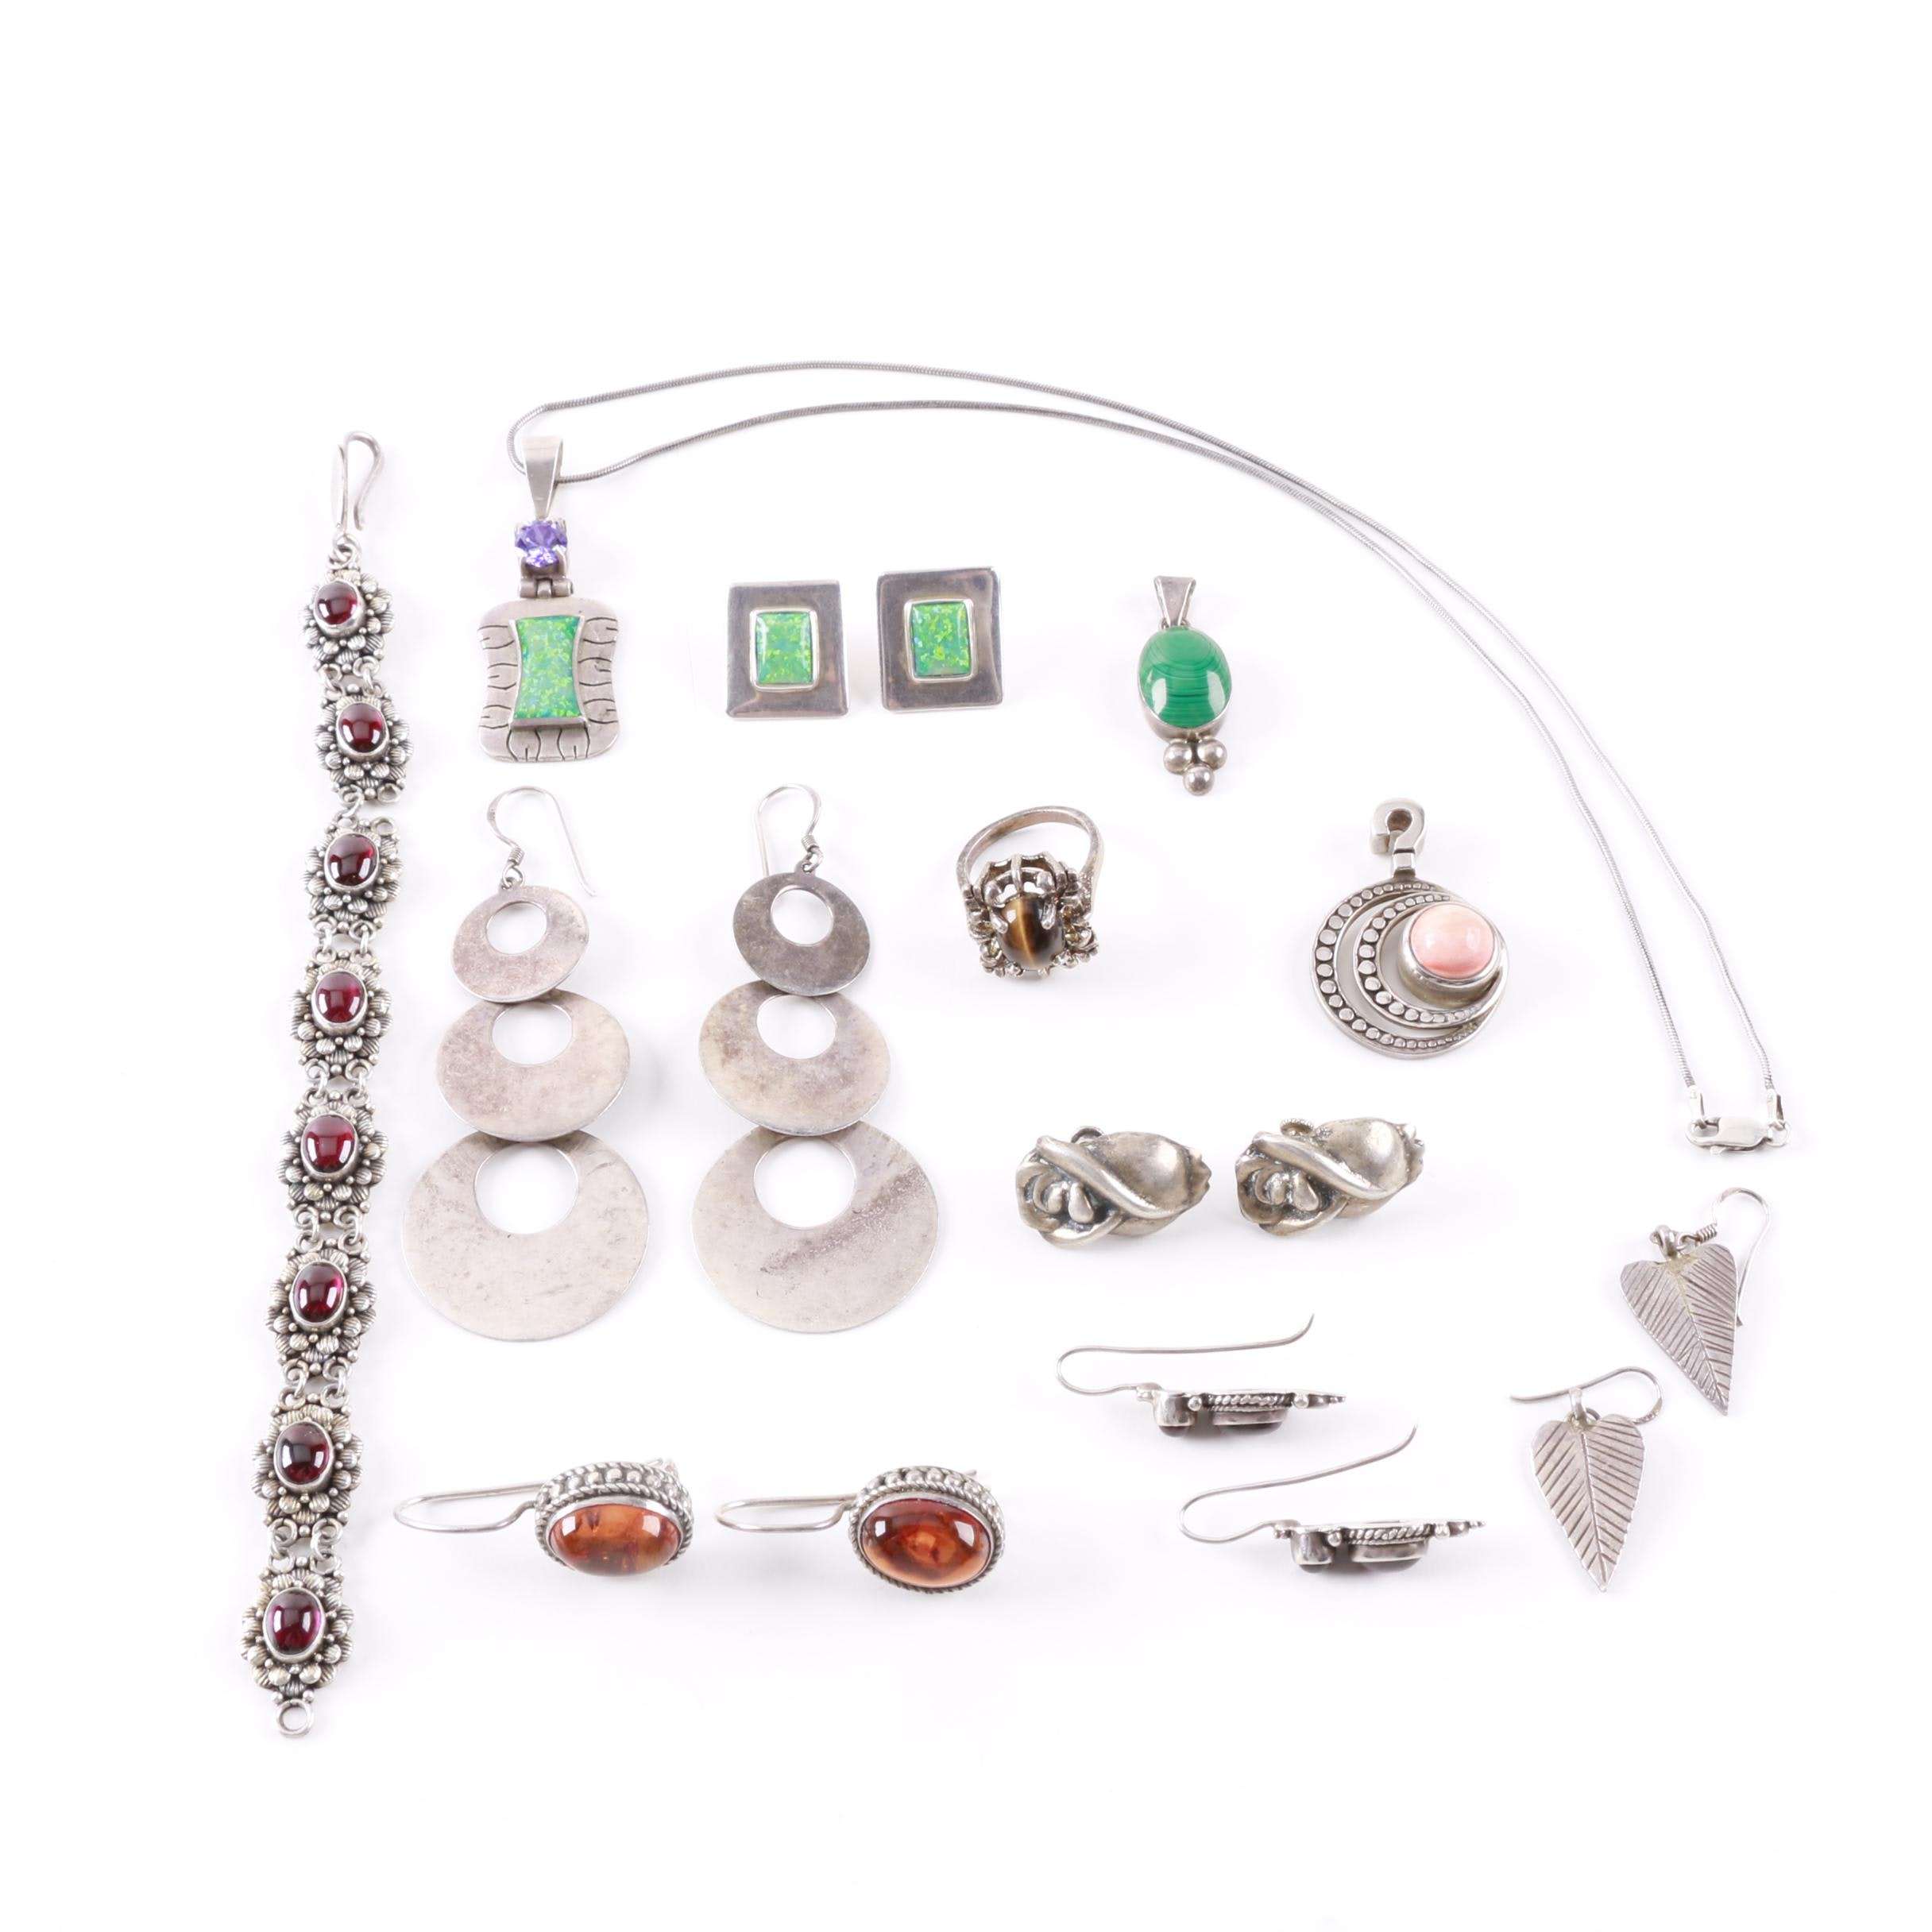 Selection of Sterling Silver Jewelry Including Gemstones